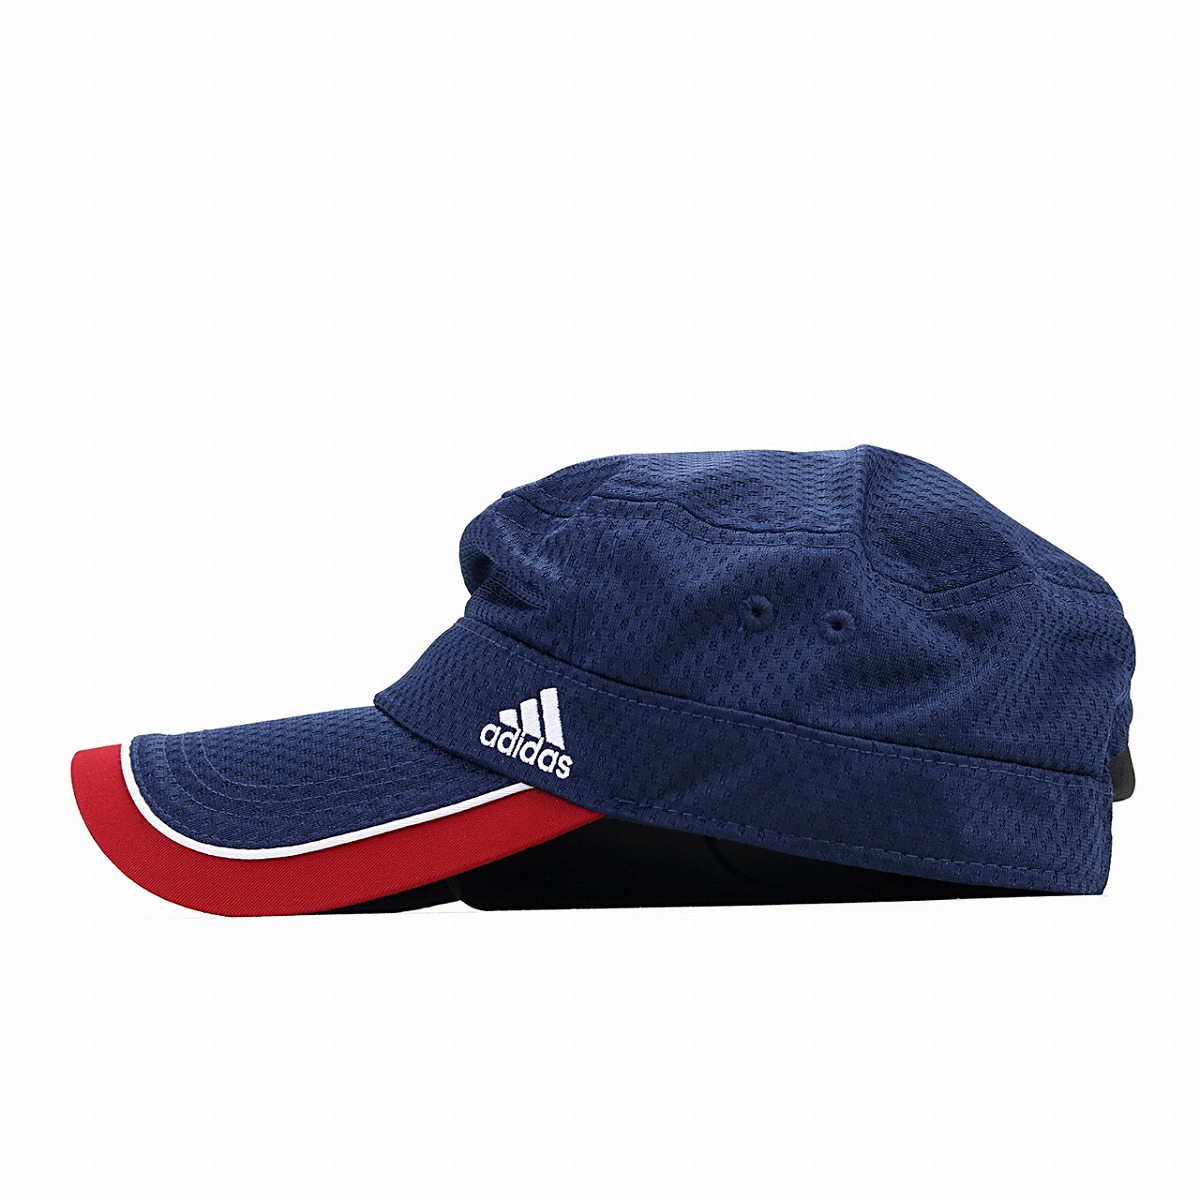 Dark blue navy [cadet cap] Father's Day gift present with work cap men  adidas cap Lady's big hat Adidas cap mesh sports cap aqua hall 57cm - 60cm  59cm